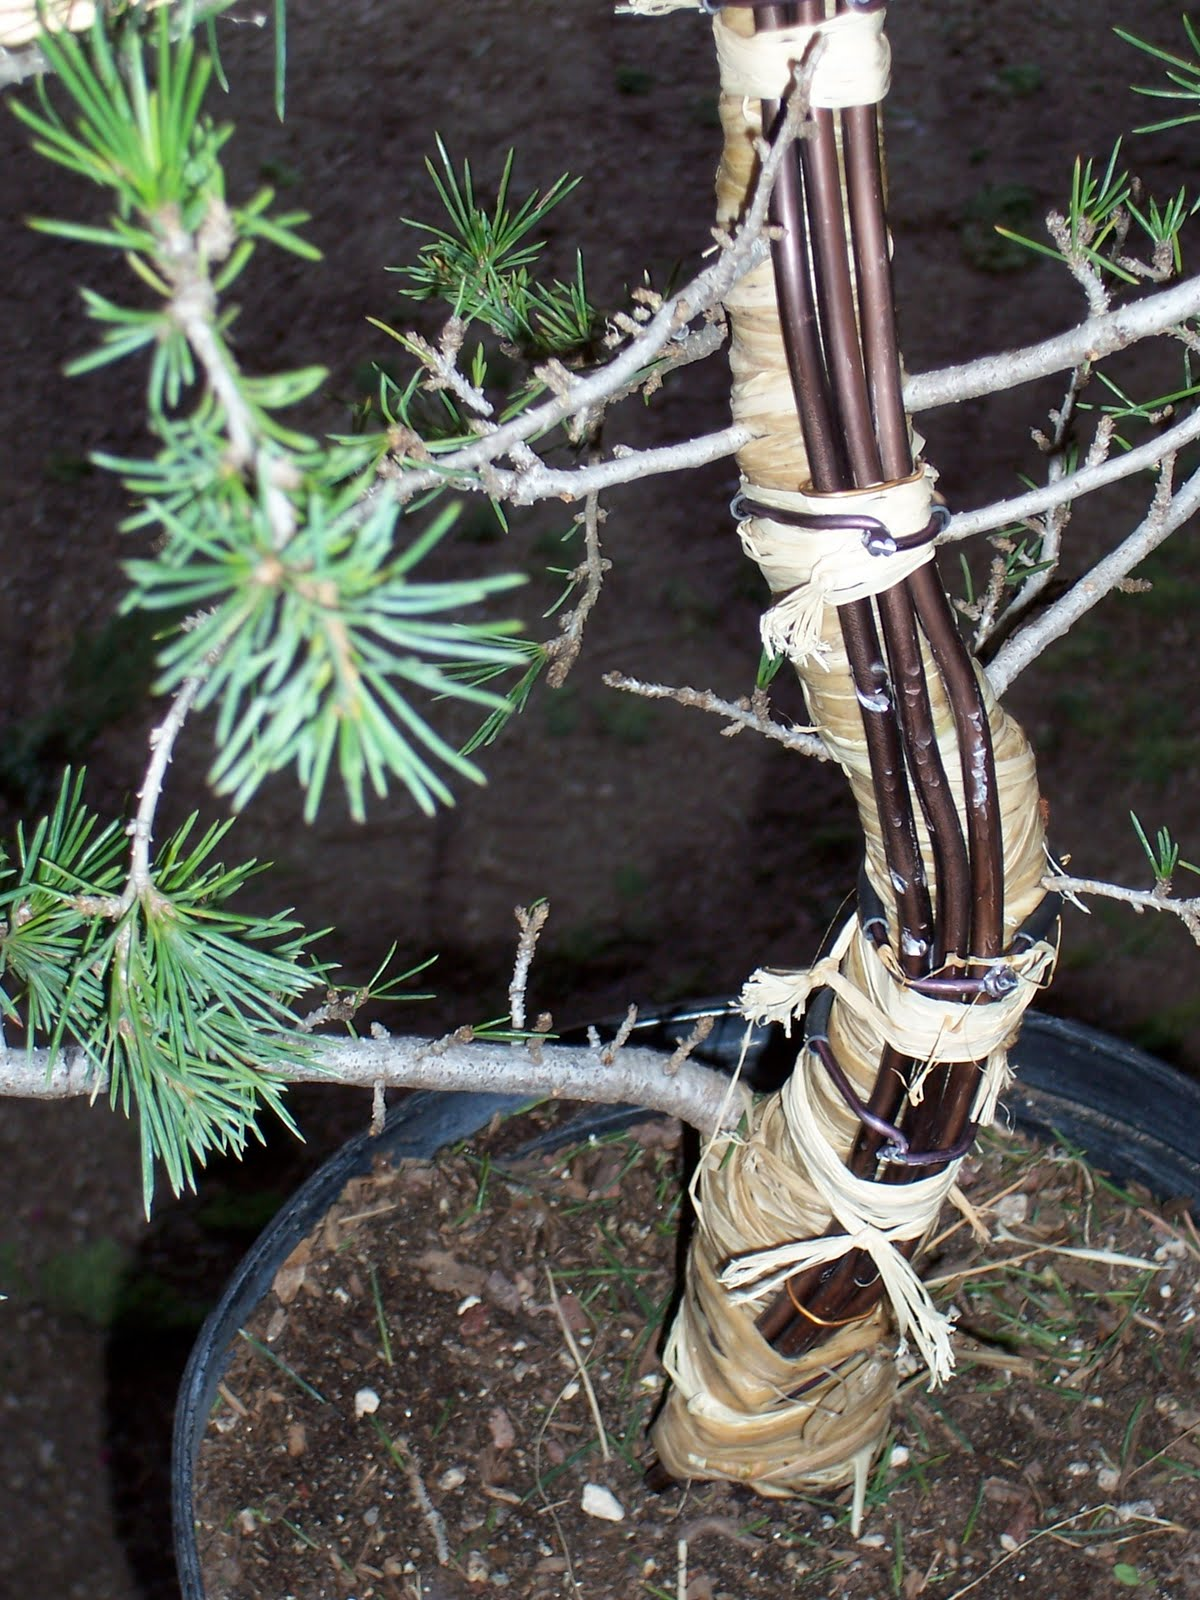 Bonsaibp39s Bonsai Blog 08 01 2010 09 01 2010